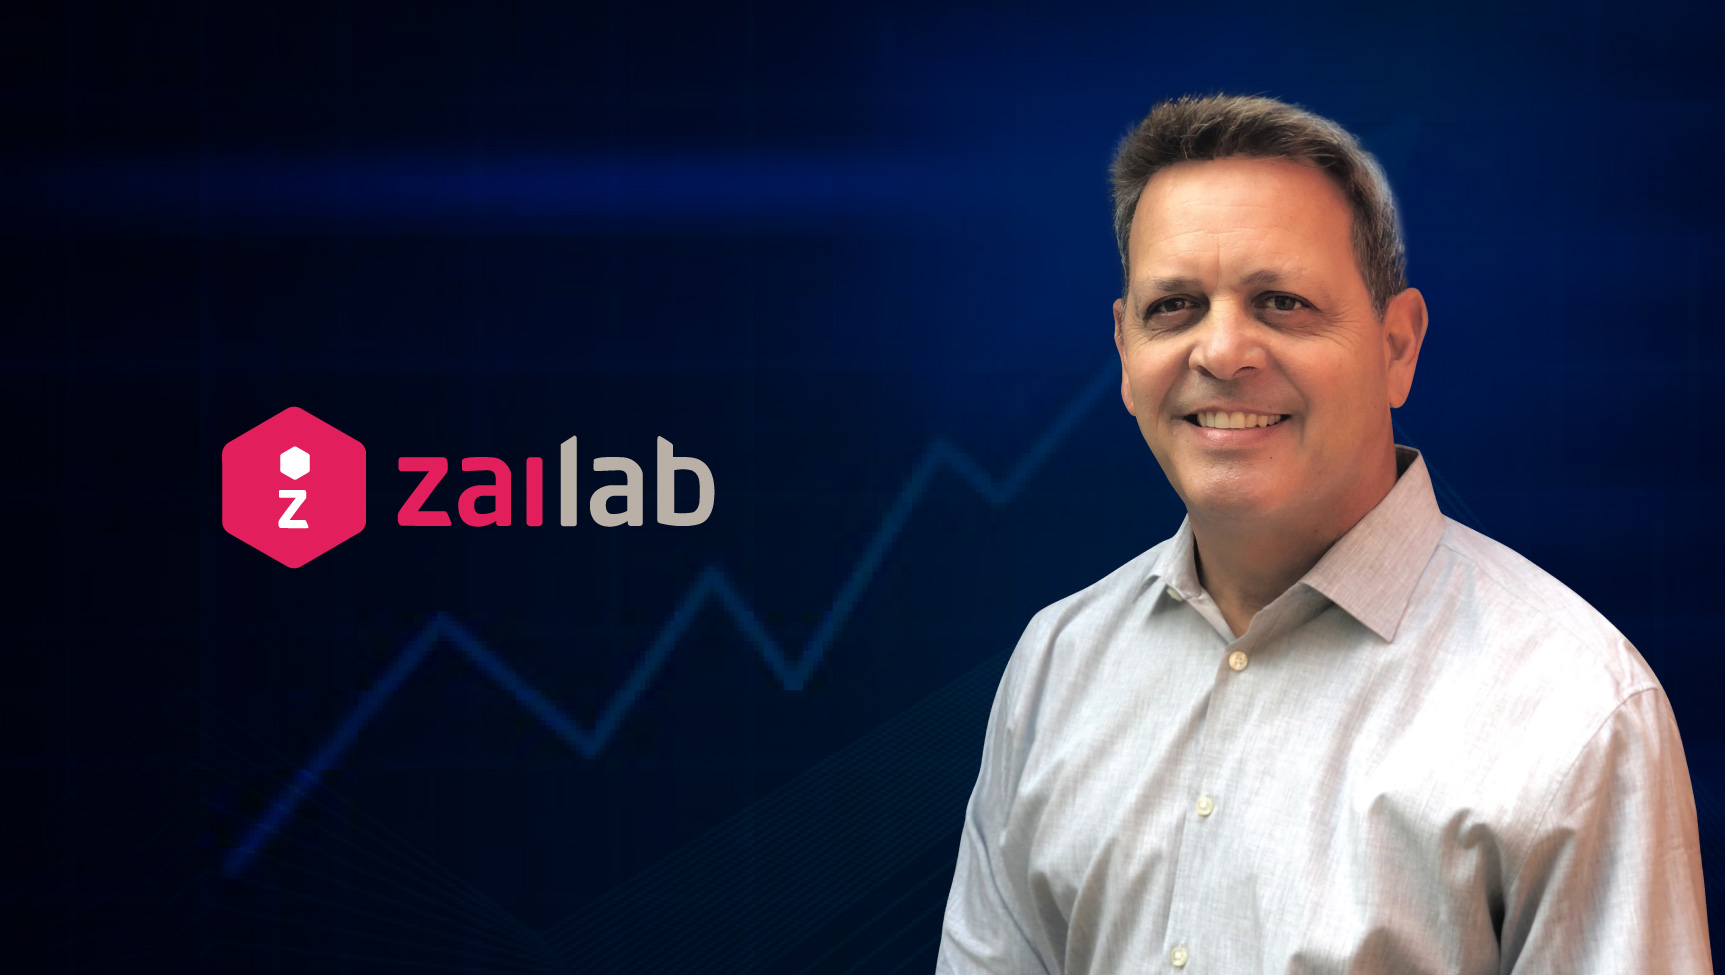 SalesTech Interview With Michael Cibelli, SVP of Sales at Zailab